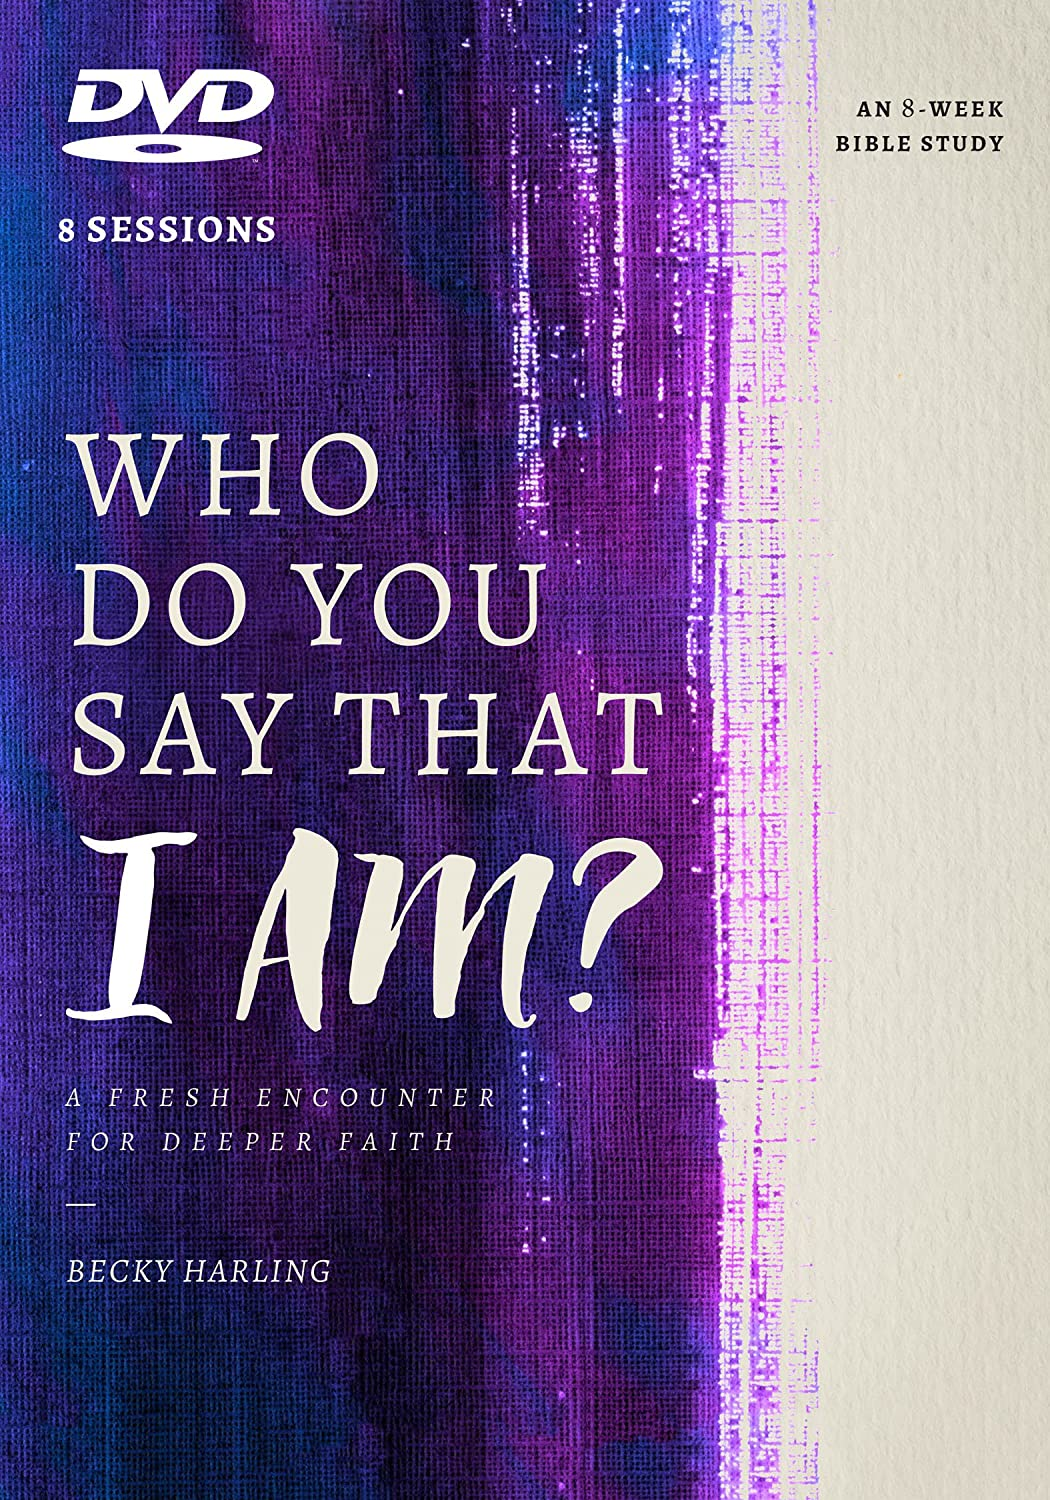 Cover of Becky Harling's DVD, Who Do You Say that I Am?